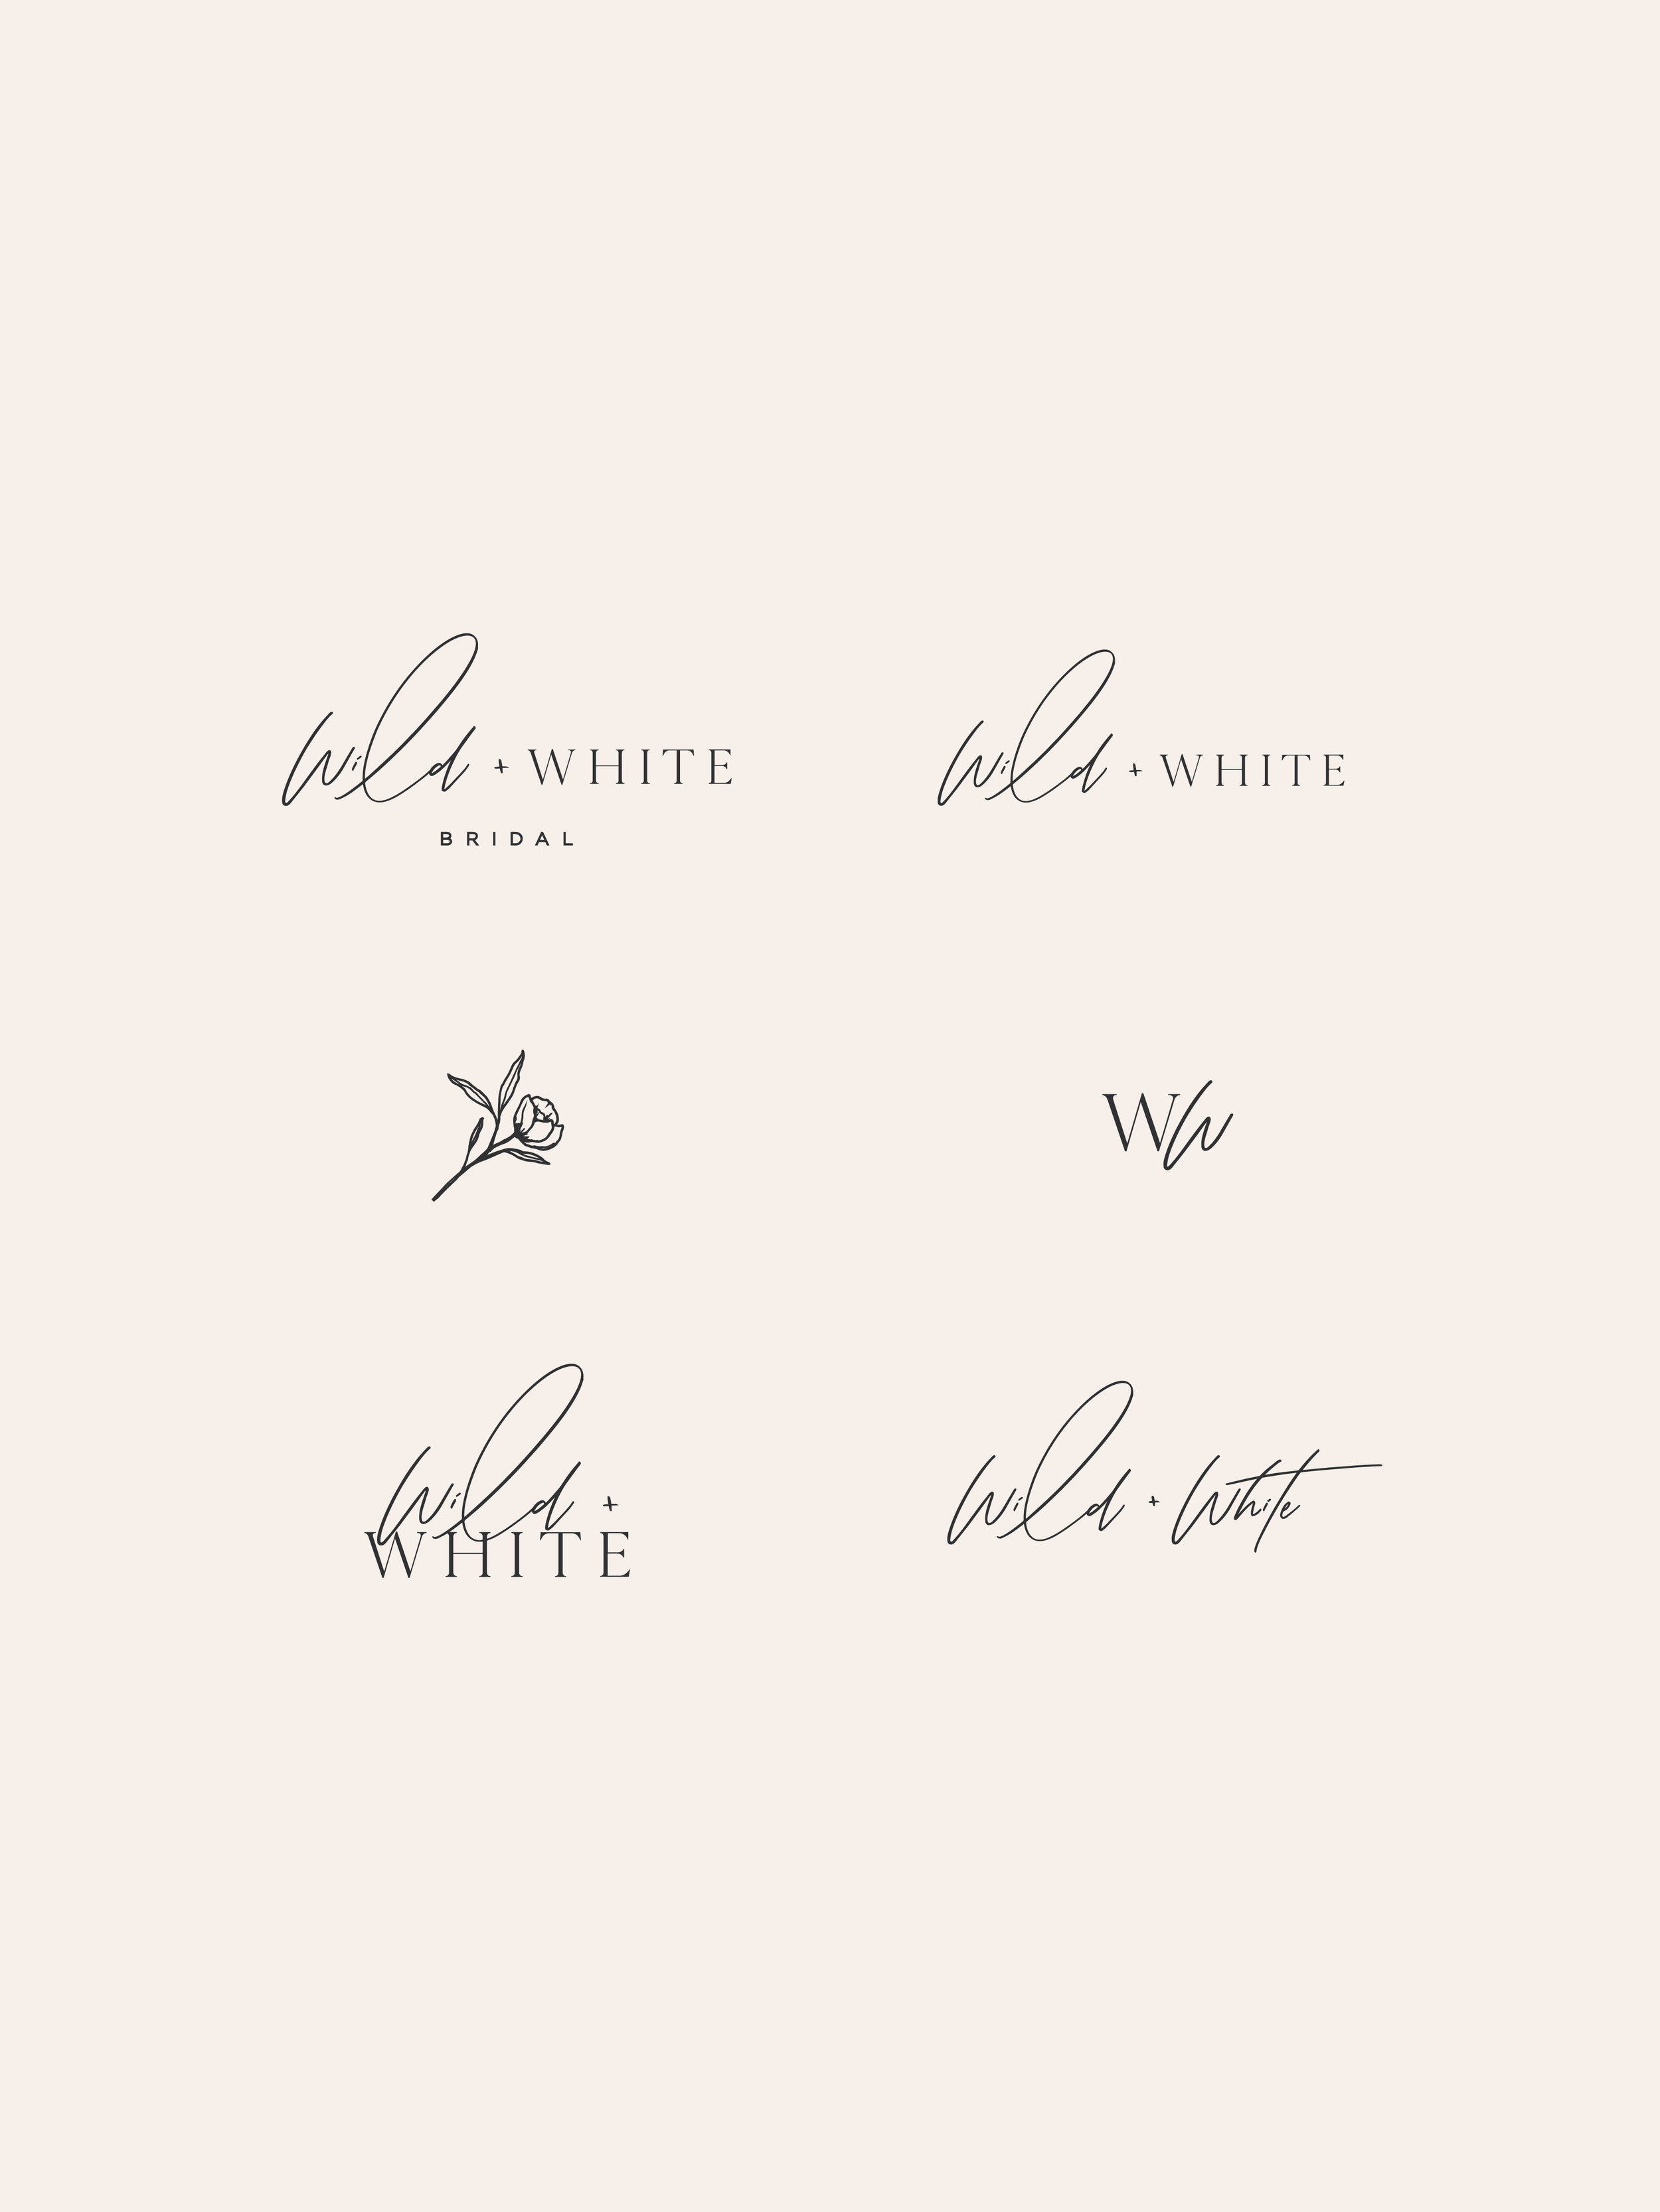 Wild and White Bridal brand elements - by January Made Design